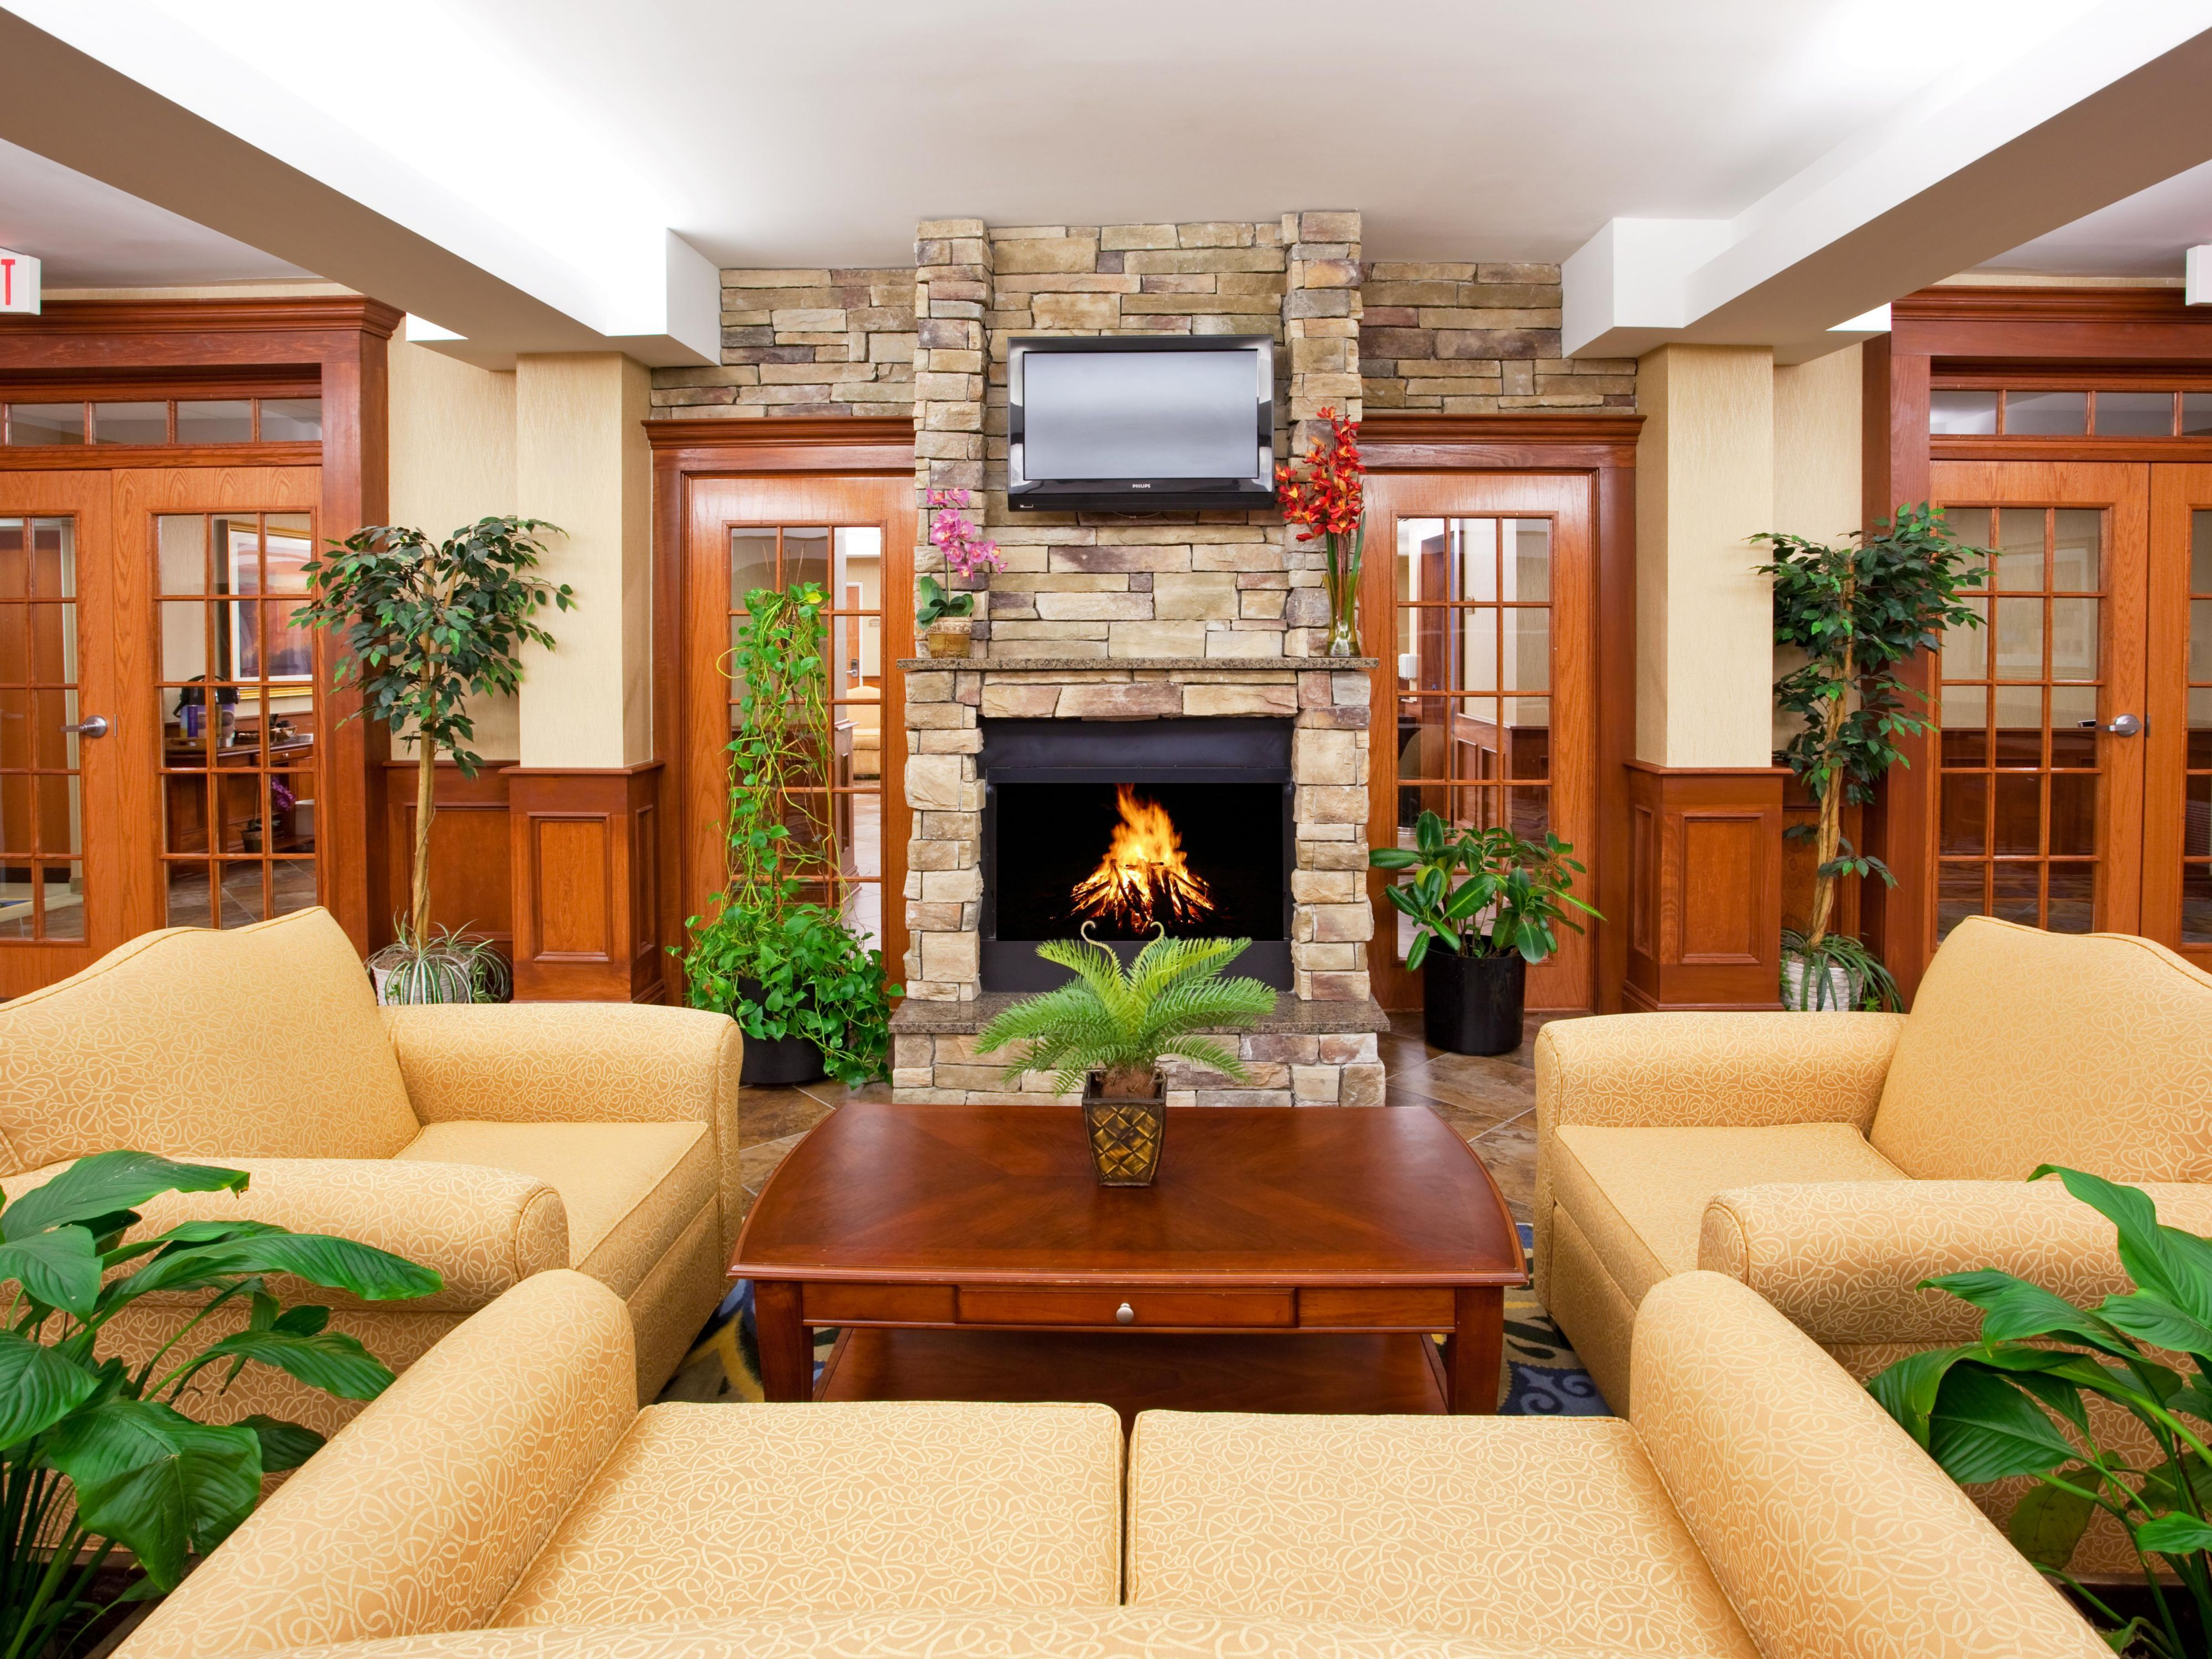 A cozy fireplace and seating area.